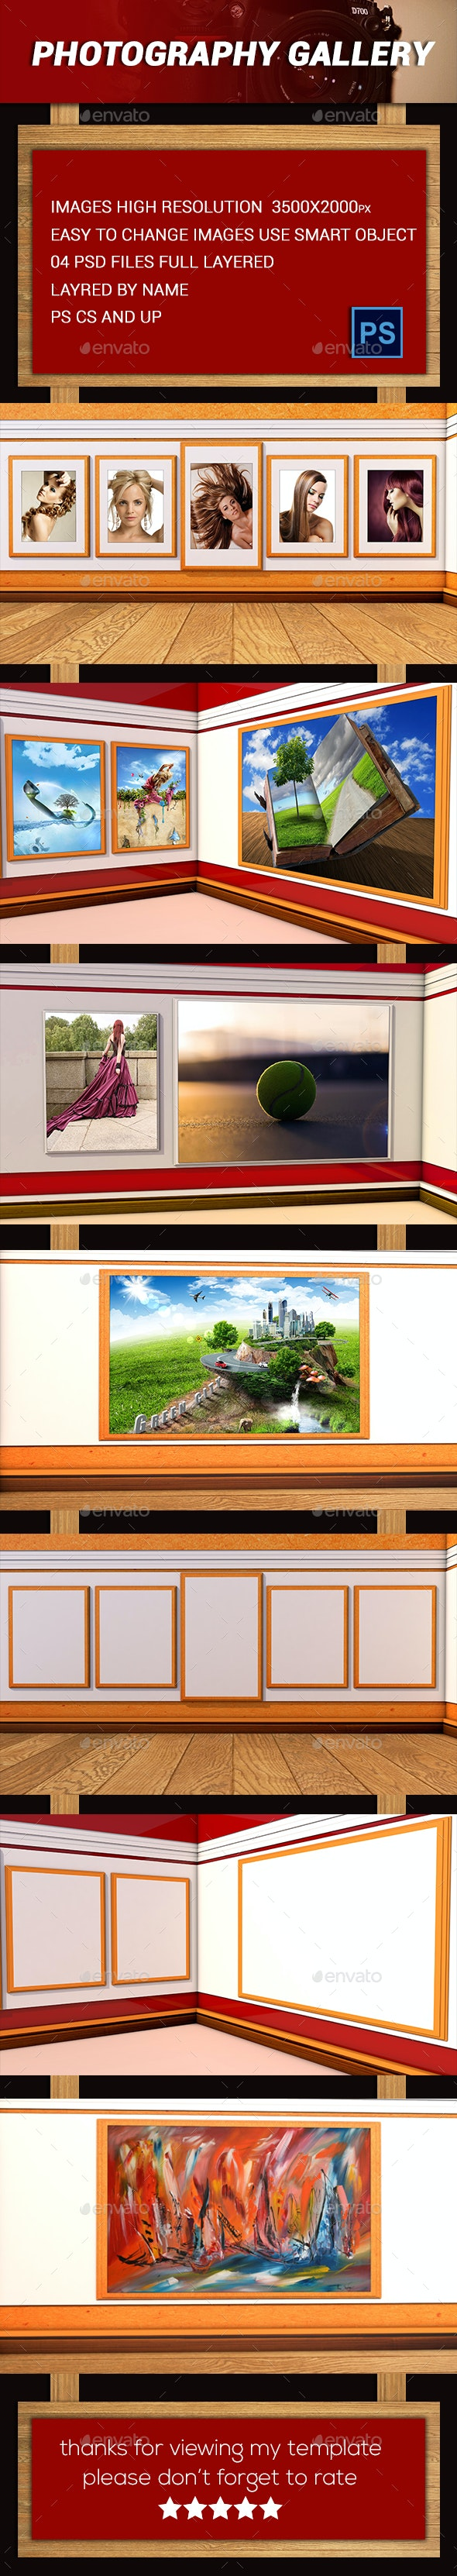 Photography Gallery - Photo Templates Graphics